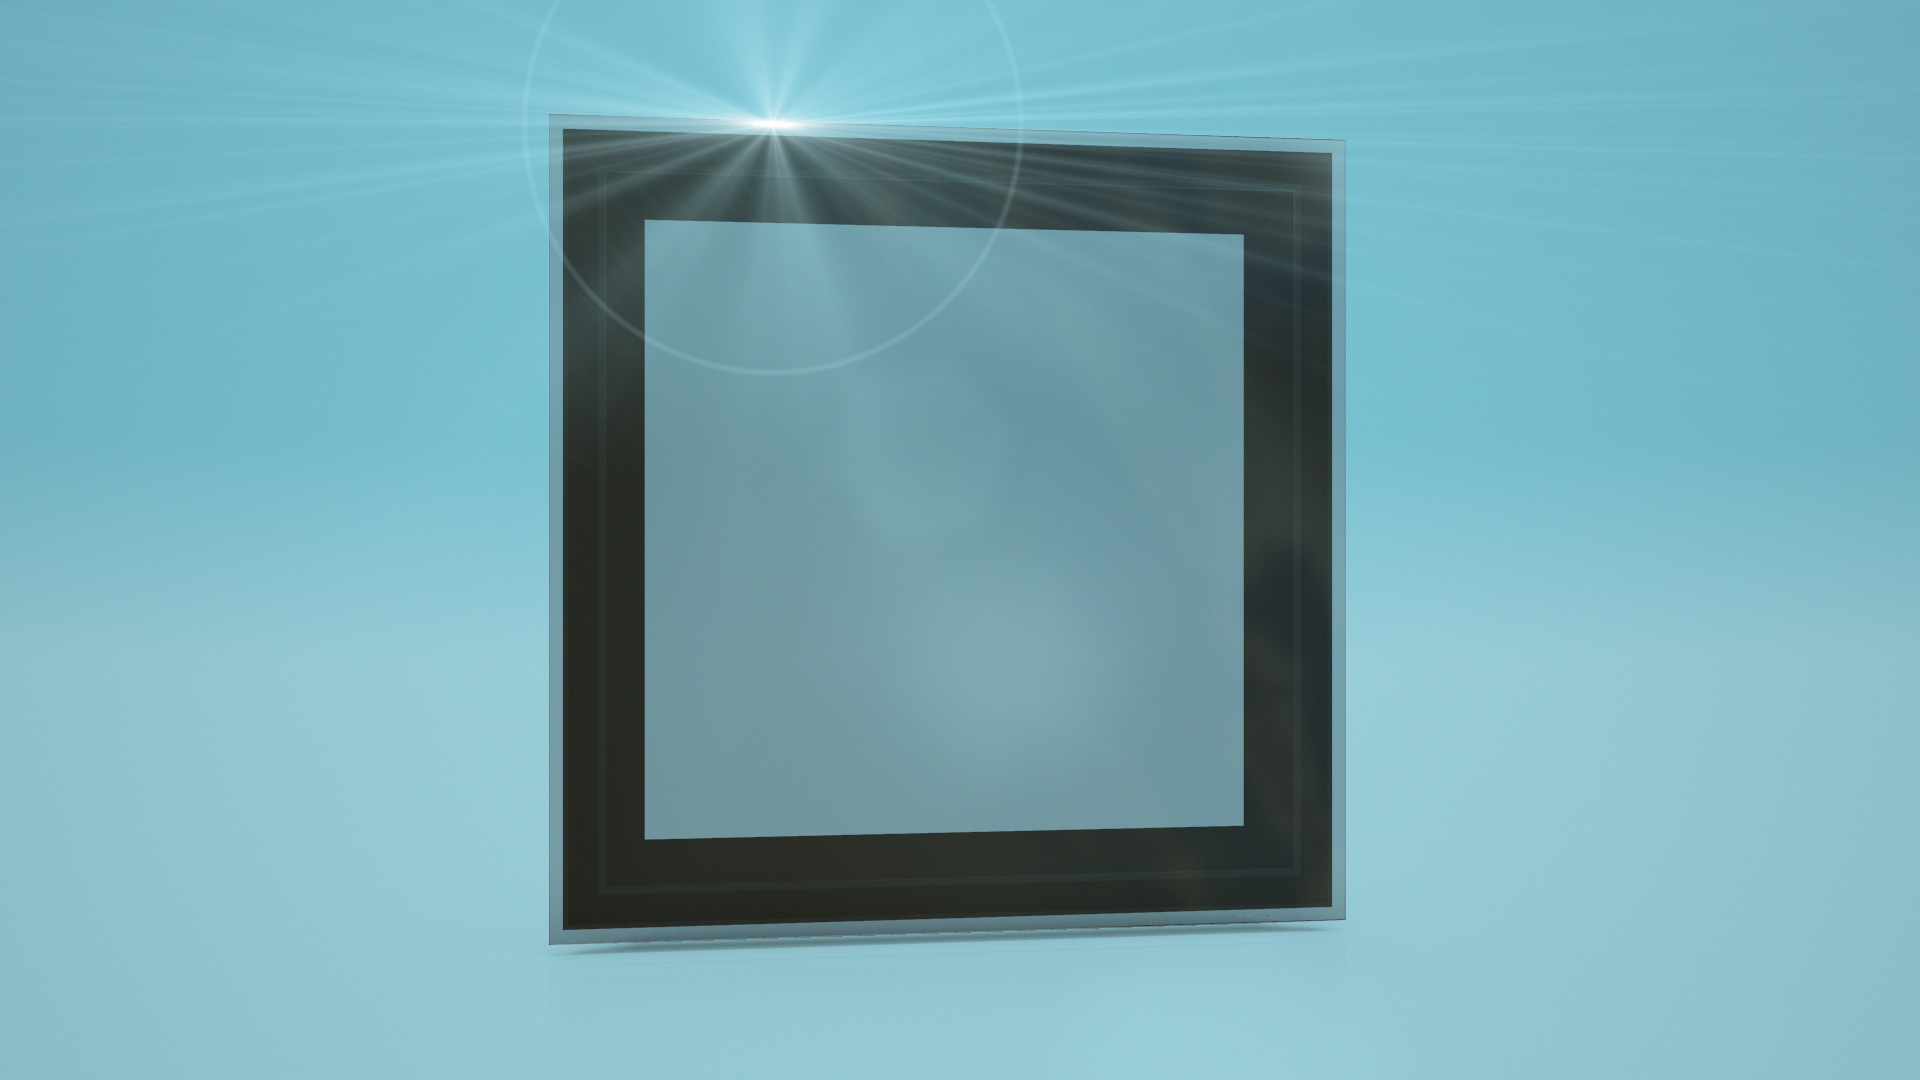 Blue Tint Glass Option Is One Of Our Most Popular Options The Blade Rooflight Is Truly The Most Customizable Roofligh Roof Light Roof Window Rooflight Company